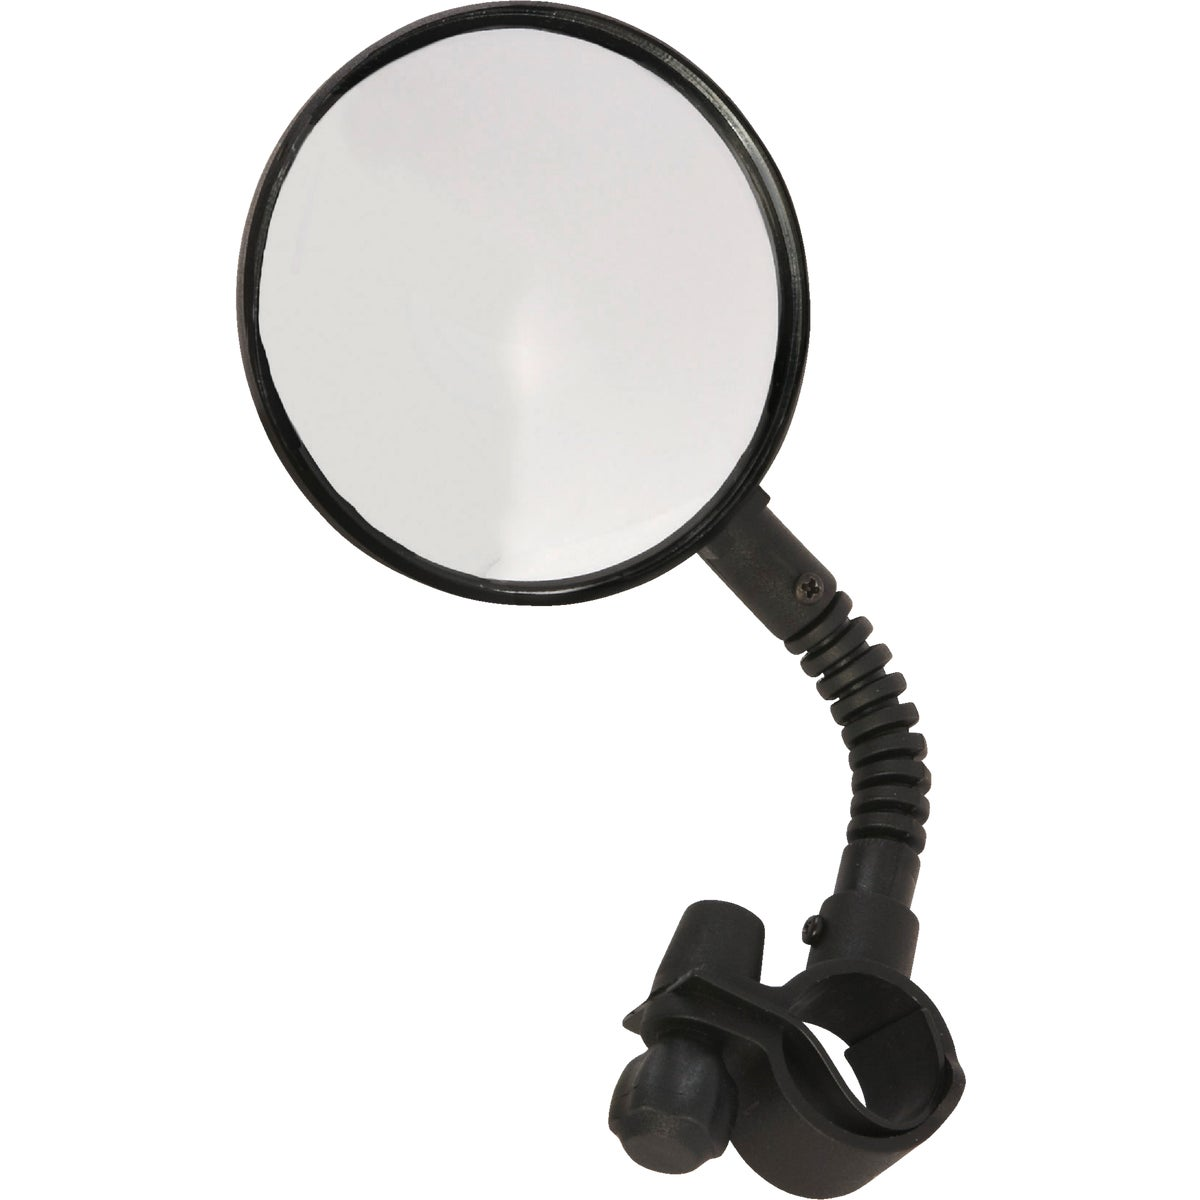 FLEX HANDLEBAR MIRROR - 7015989 by Bell Sports